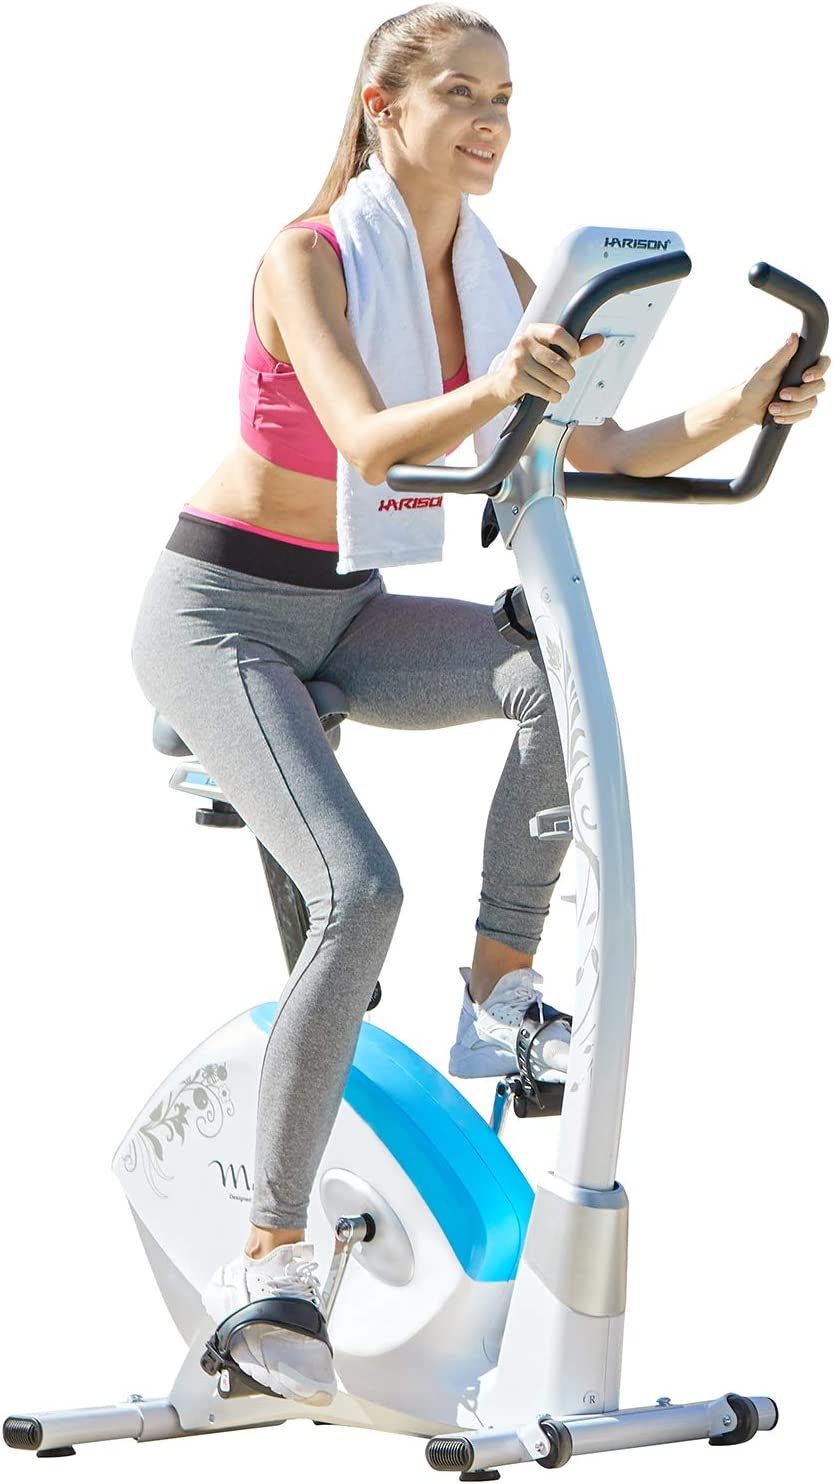 Amazon Promo Code for Magnetic Stationary Upright Exercise Bike